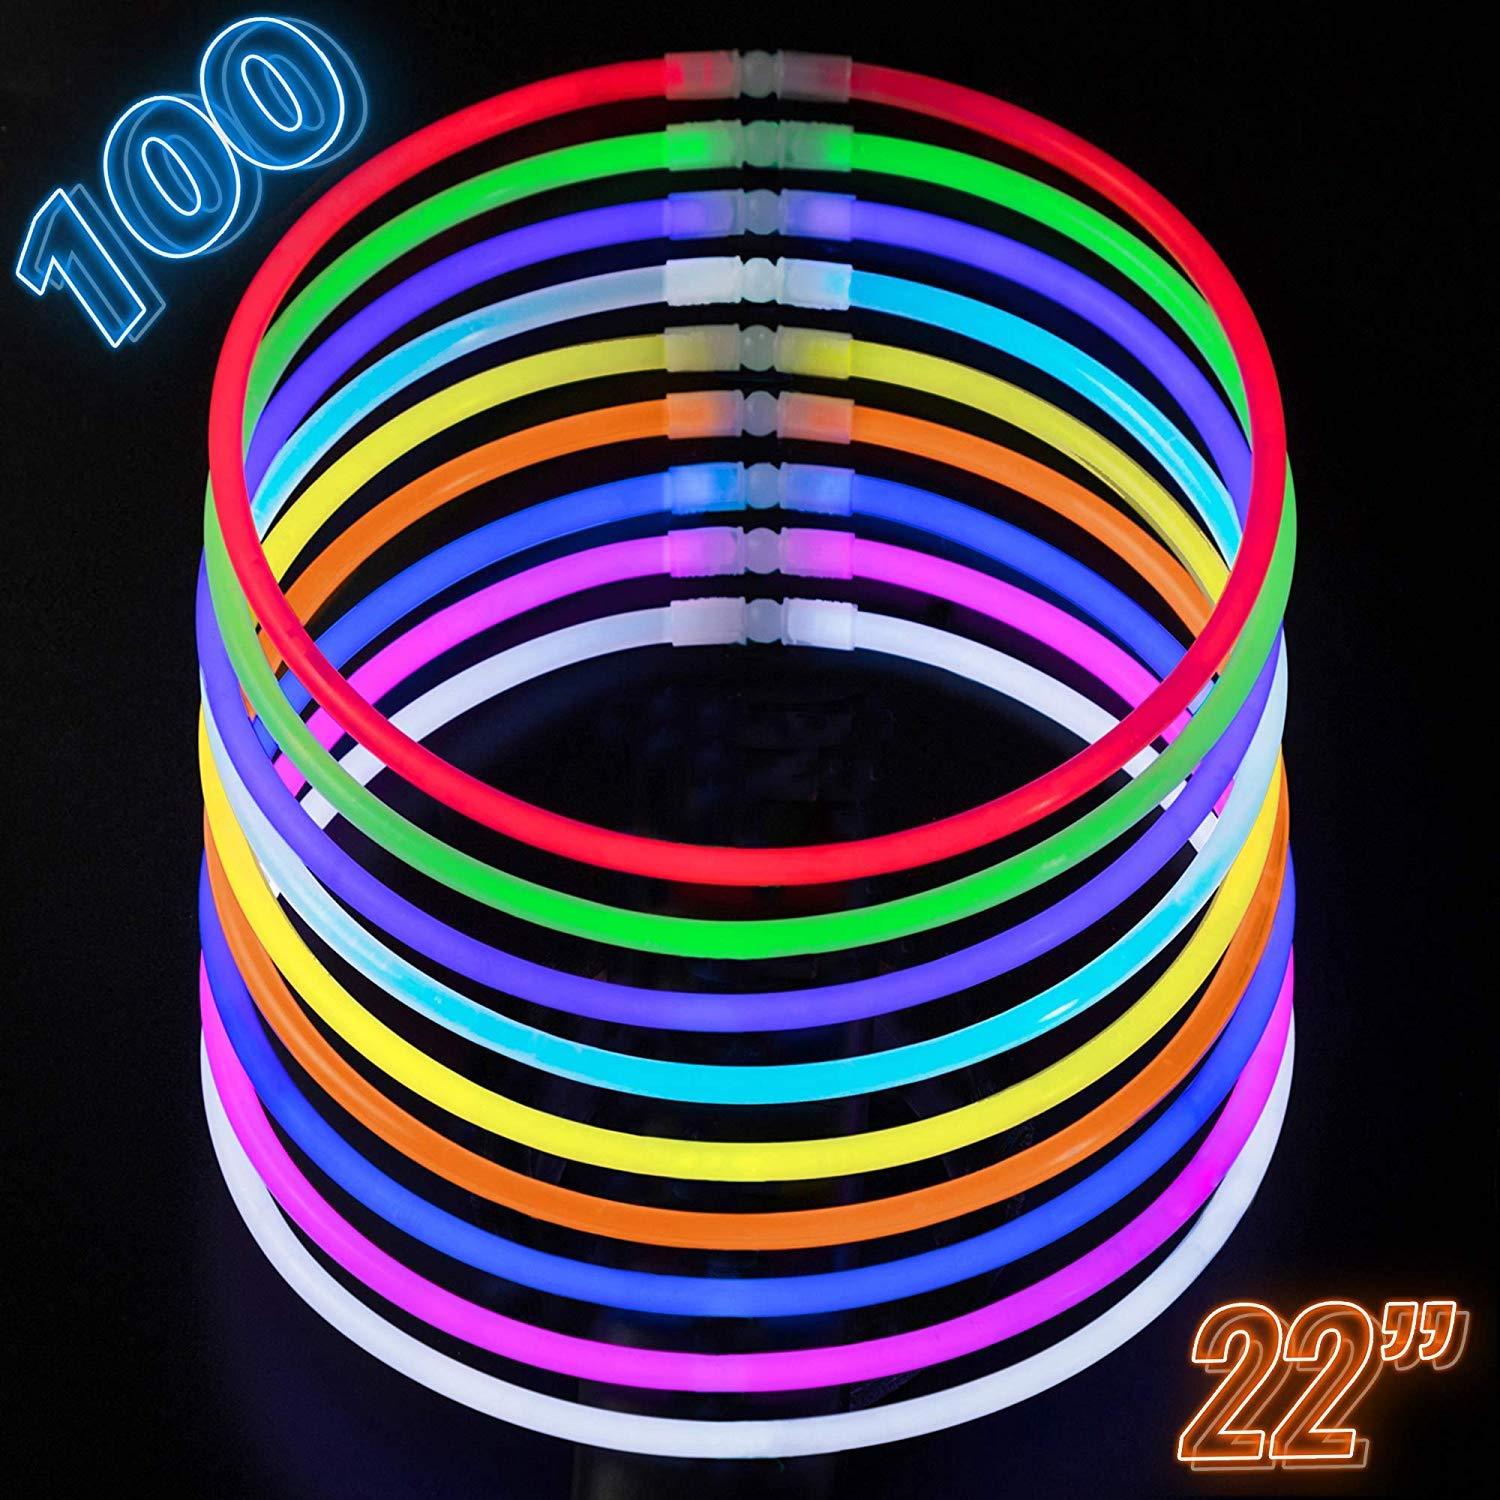 Glow Necklaces Bulk Party Supplies - 100 Glow in the Dark Necklaces - 22 Inch Glow Sticks - Extra Bright Neon Glow Necklace - Strong 6mm Thick - 9 Vibrant Neon Colors - Stuffers for Kids - Mix